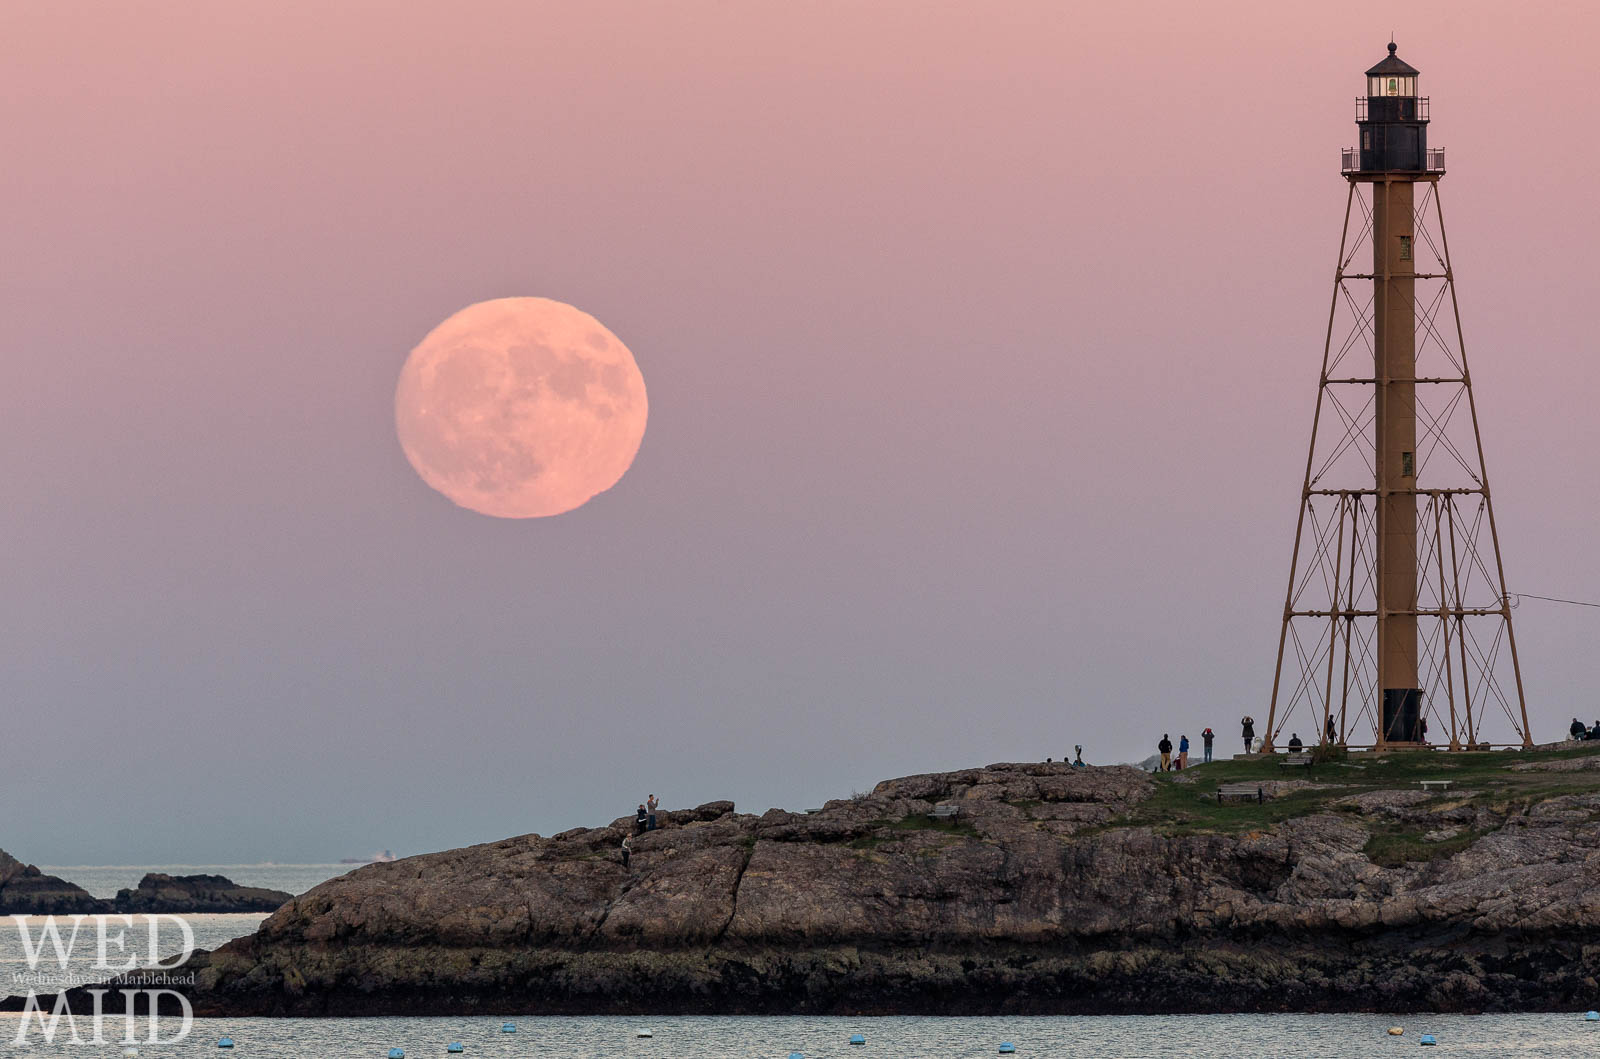 The supermoon rises over Marblehead Light as the largest full moon in over 60 years. Crowds gather at Chandler Hovey Park to watch the display.